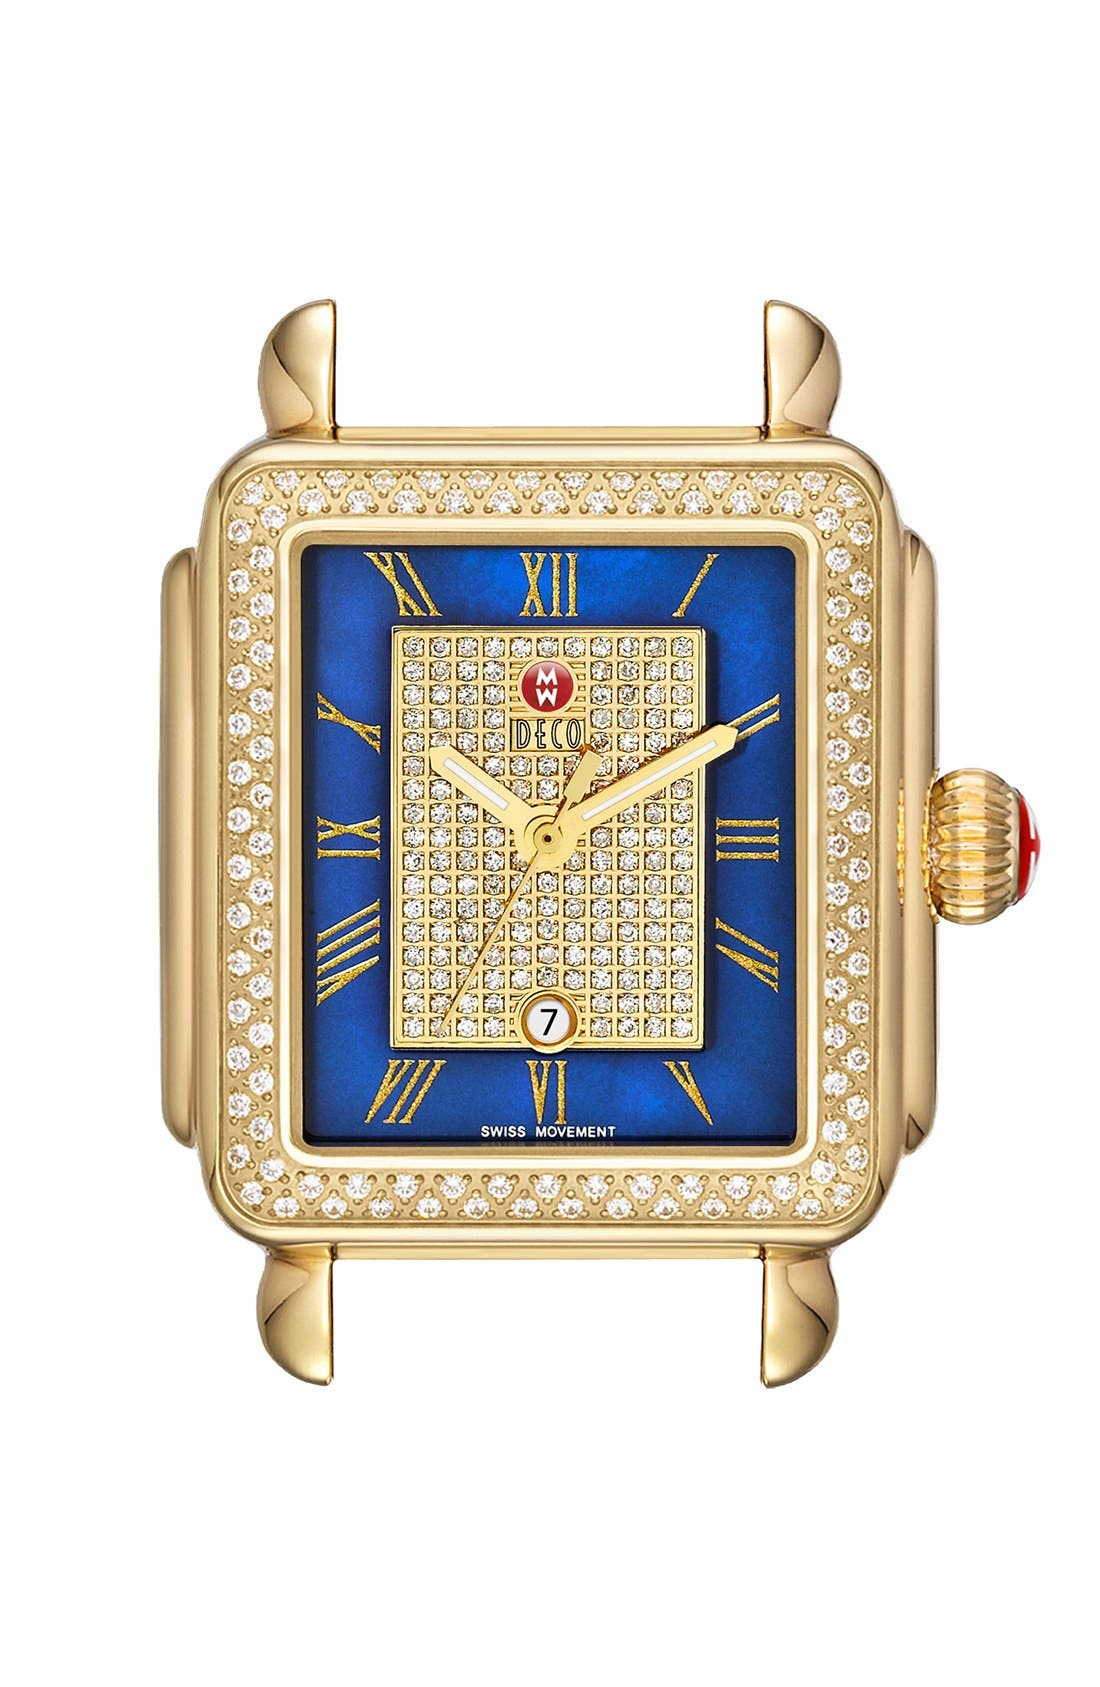 Alternate Image 1 Selected - MICHELE 'Deco' Diamond & Mother-of-Pearl Dial Watch Case, 33mm x 35mm